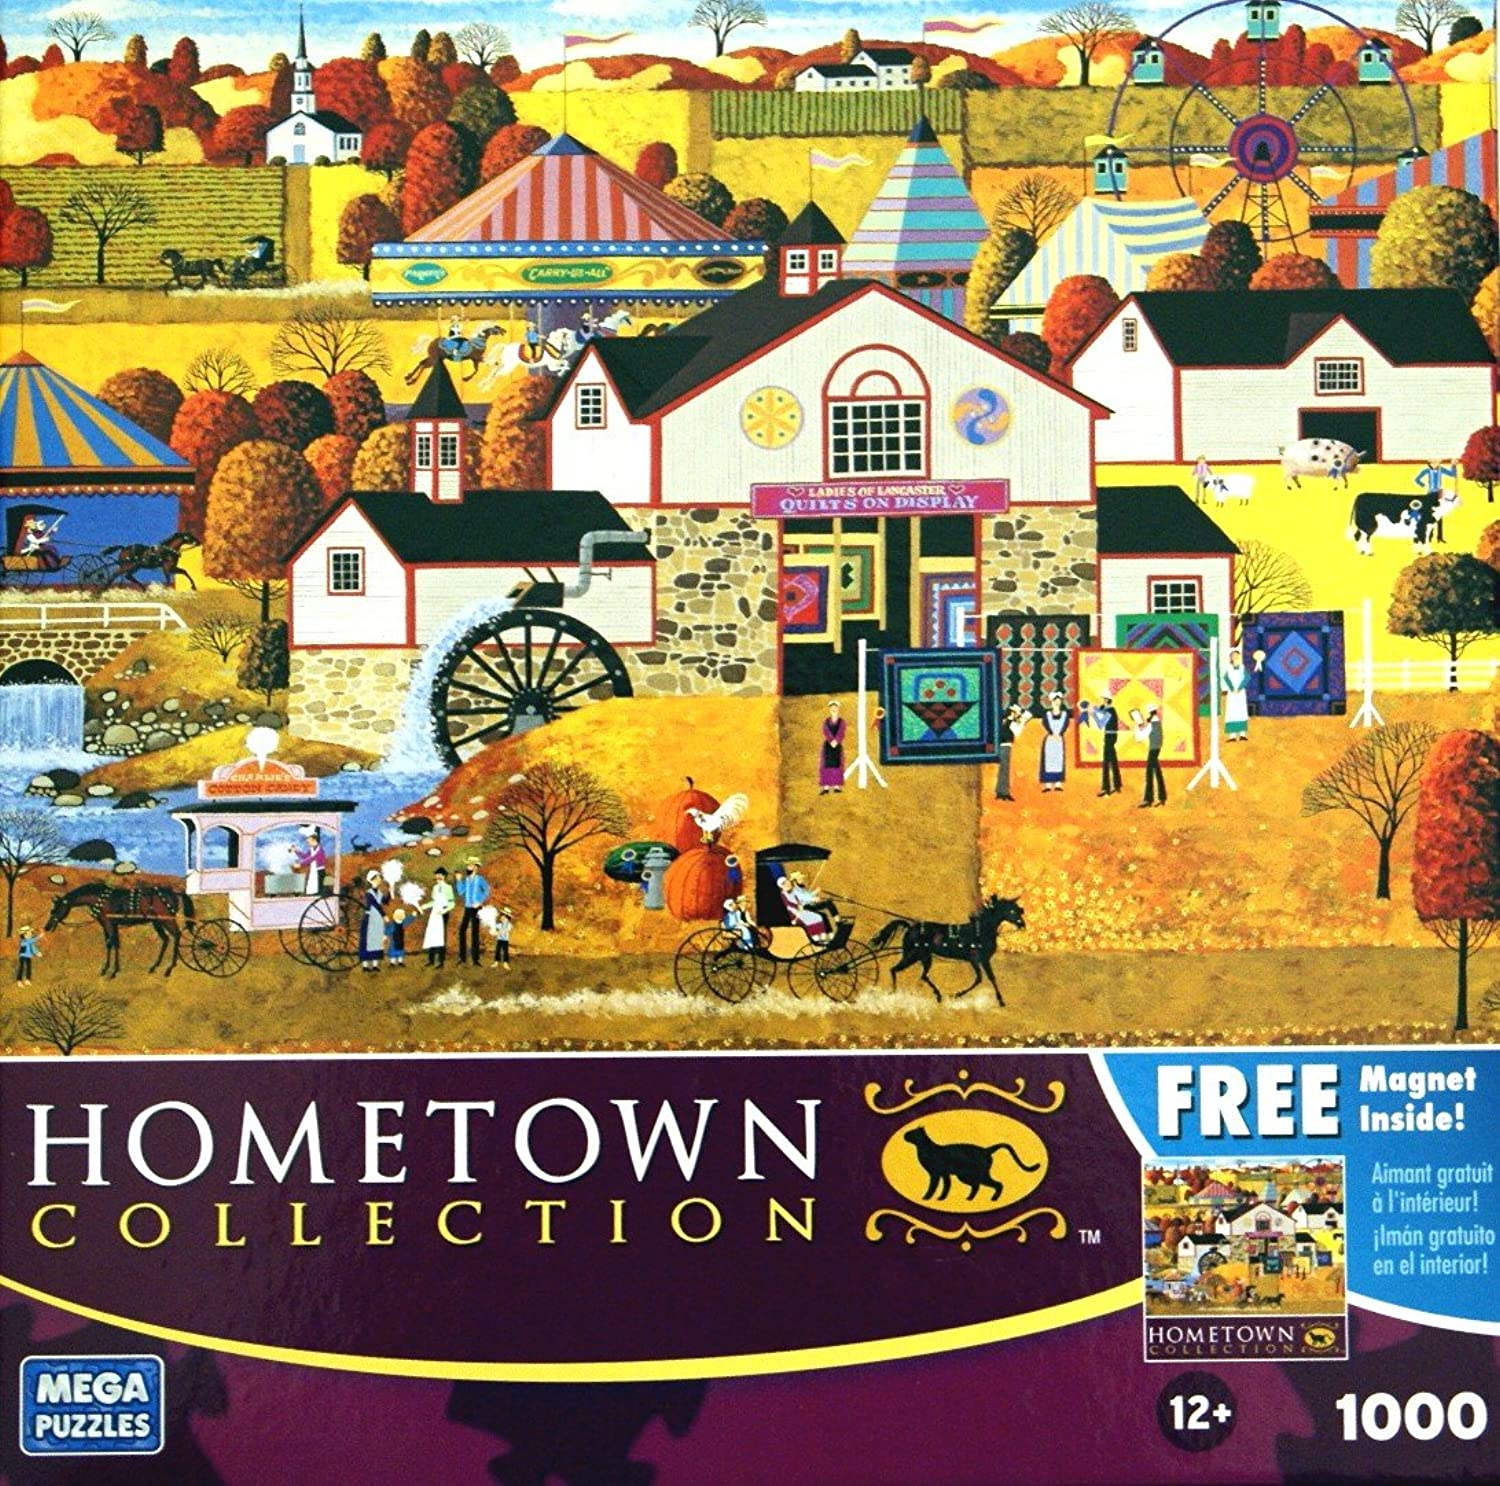 Mega Puzzles Hometown Collection Ladies of Lancaster by Heronim 1000 piece Puzzle